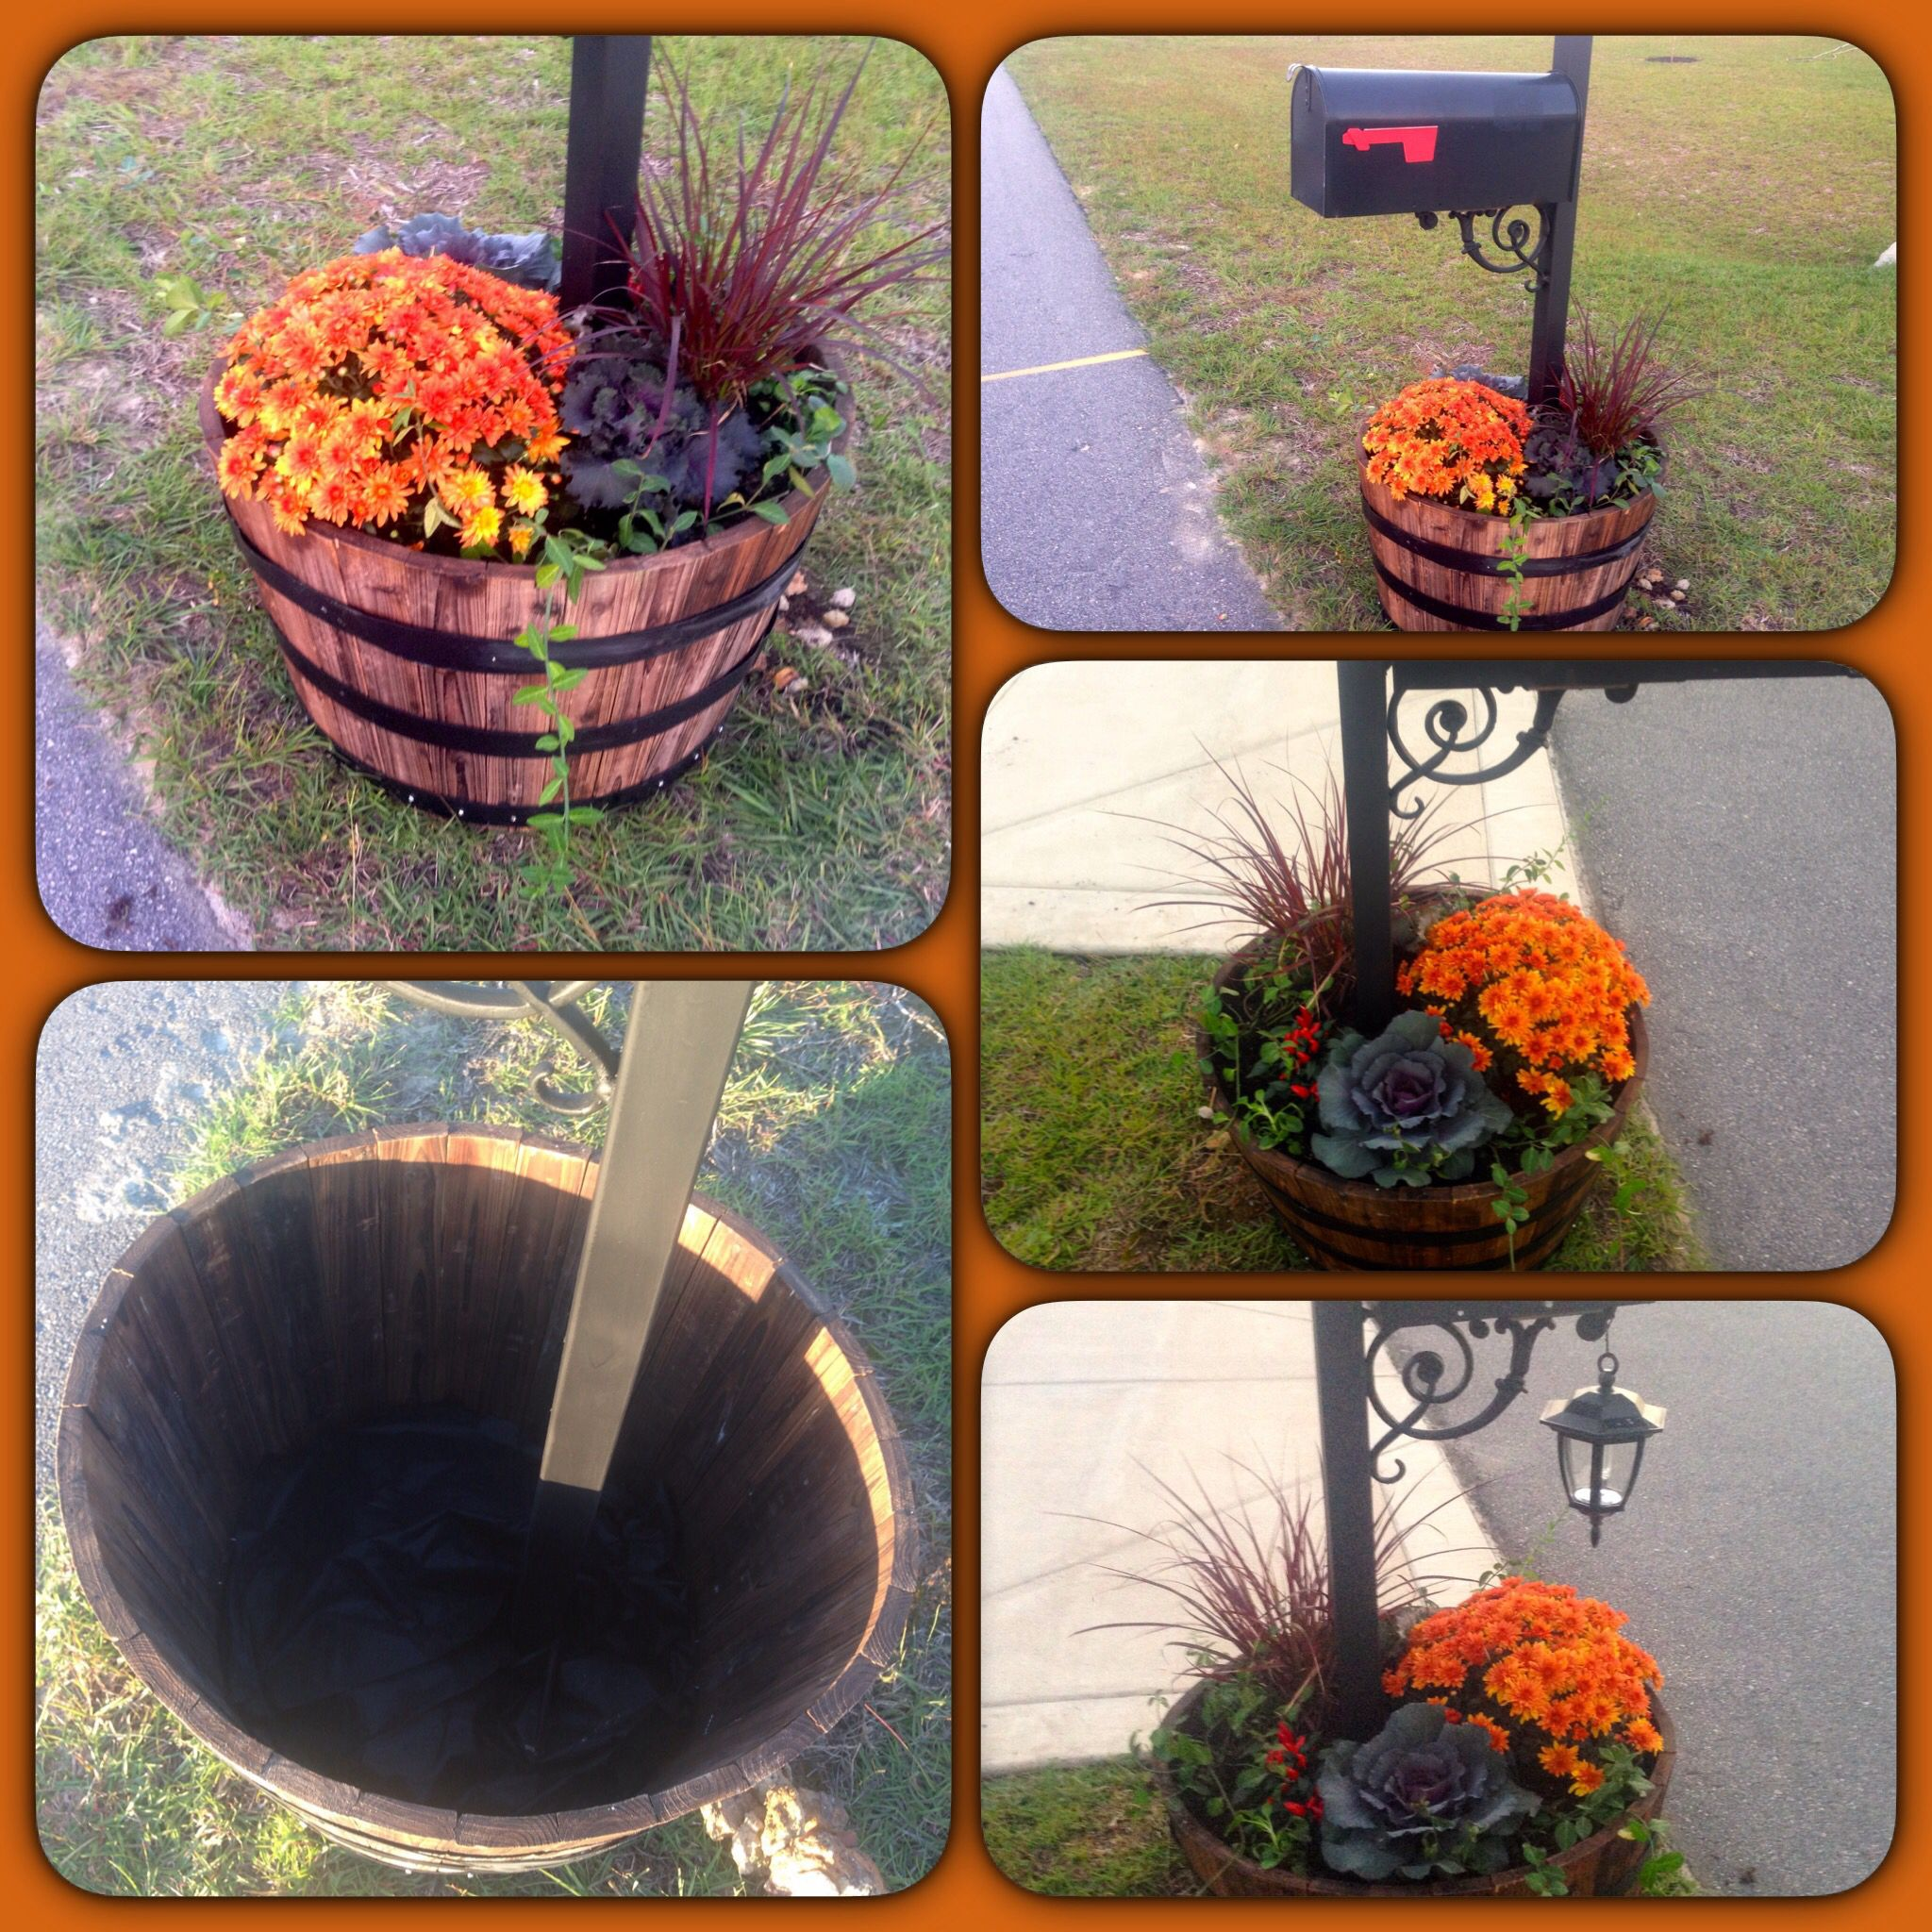 Whiskey Barrel Planter I Wanted To Make The Mailbox Area Look Pretty But Didnt Want The Same Old Flowerbed So This Is What I Came Up With Removed The Bott With Images